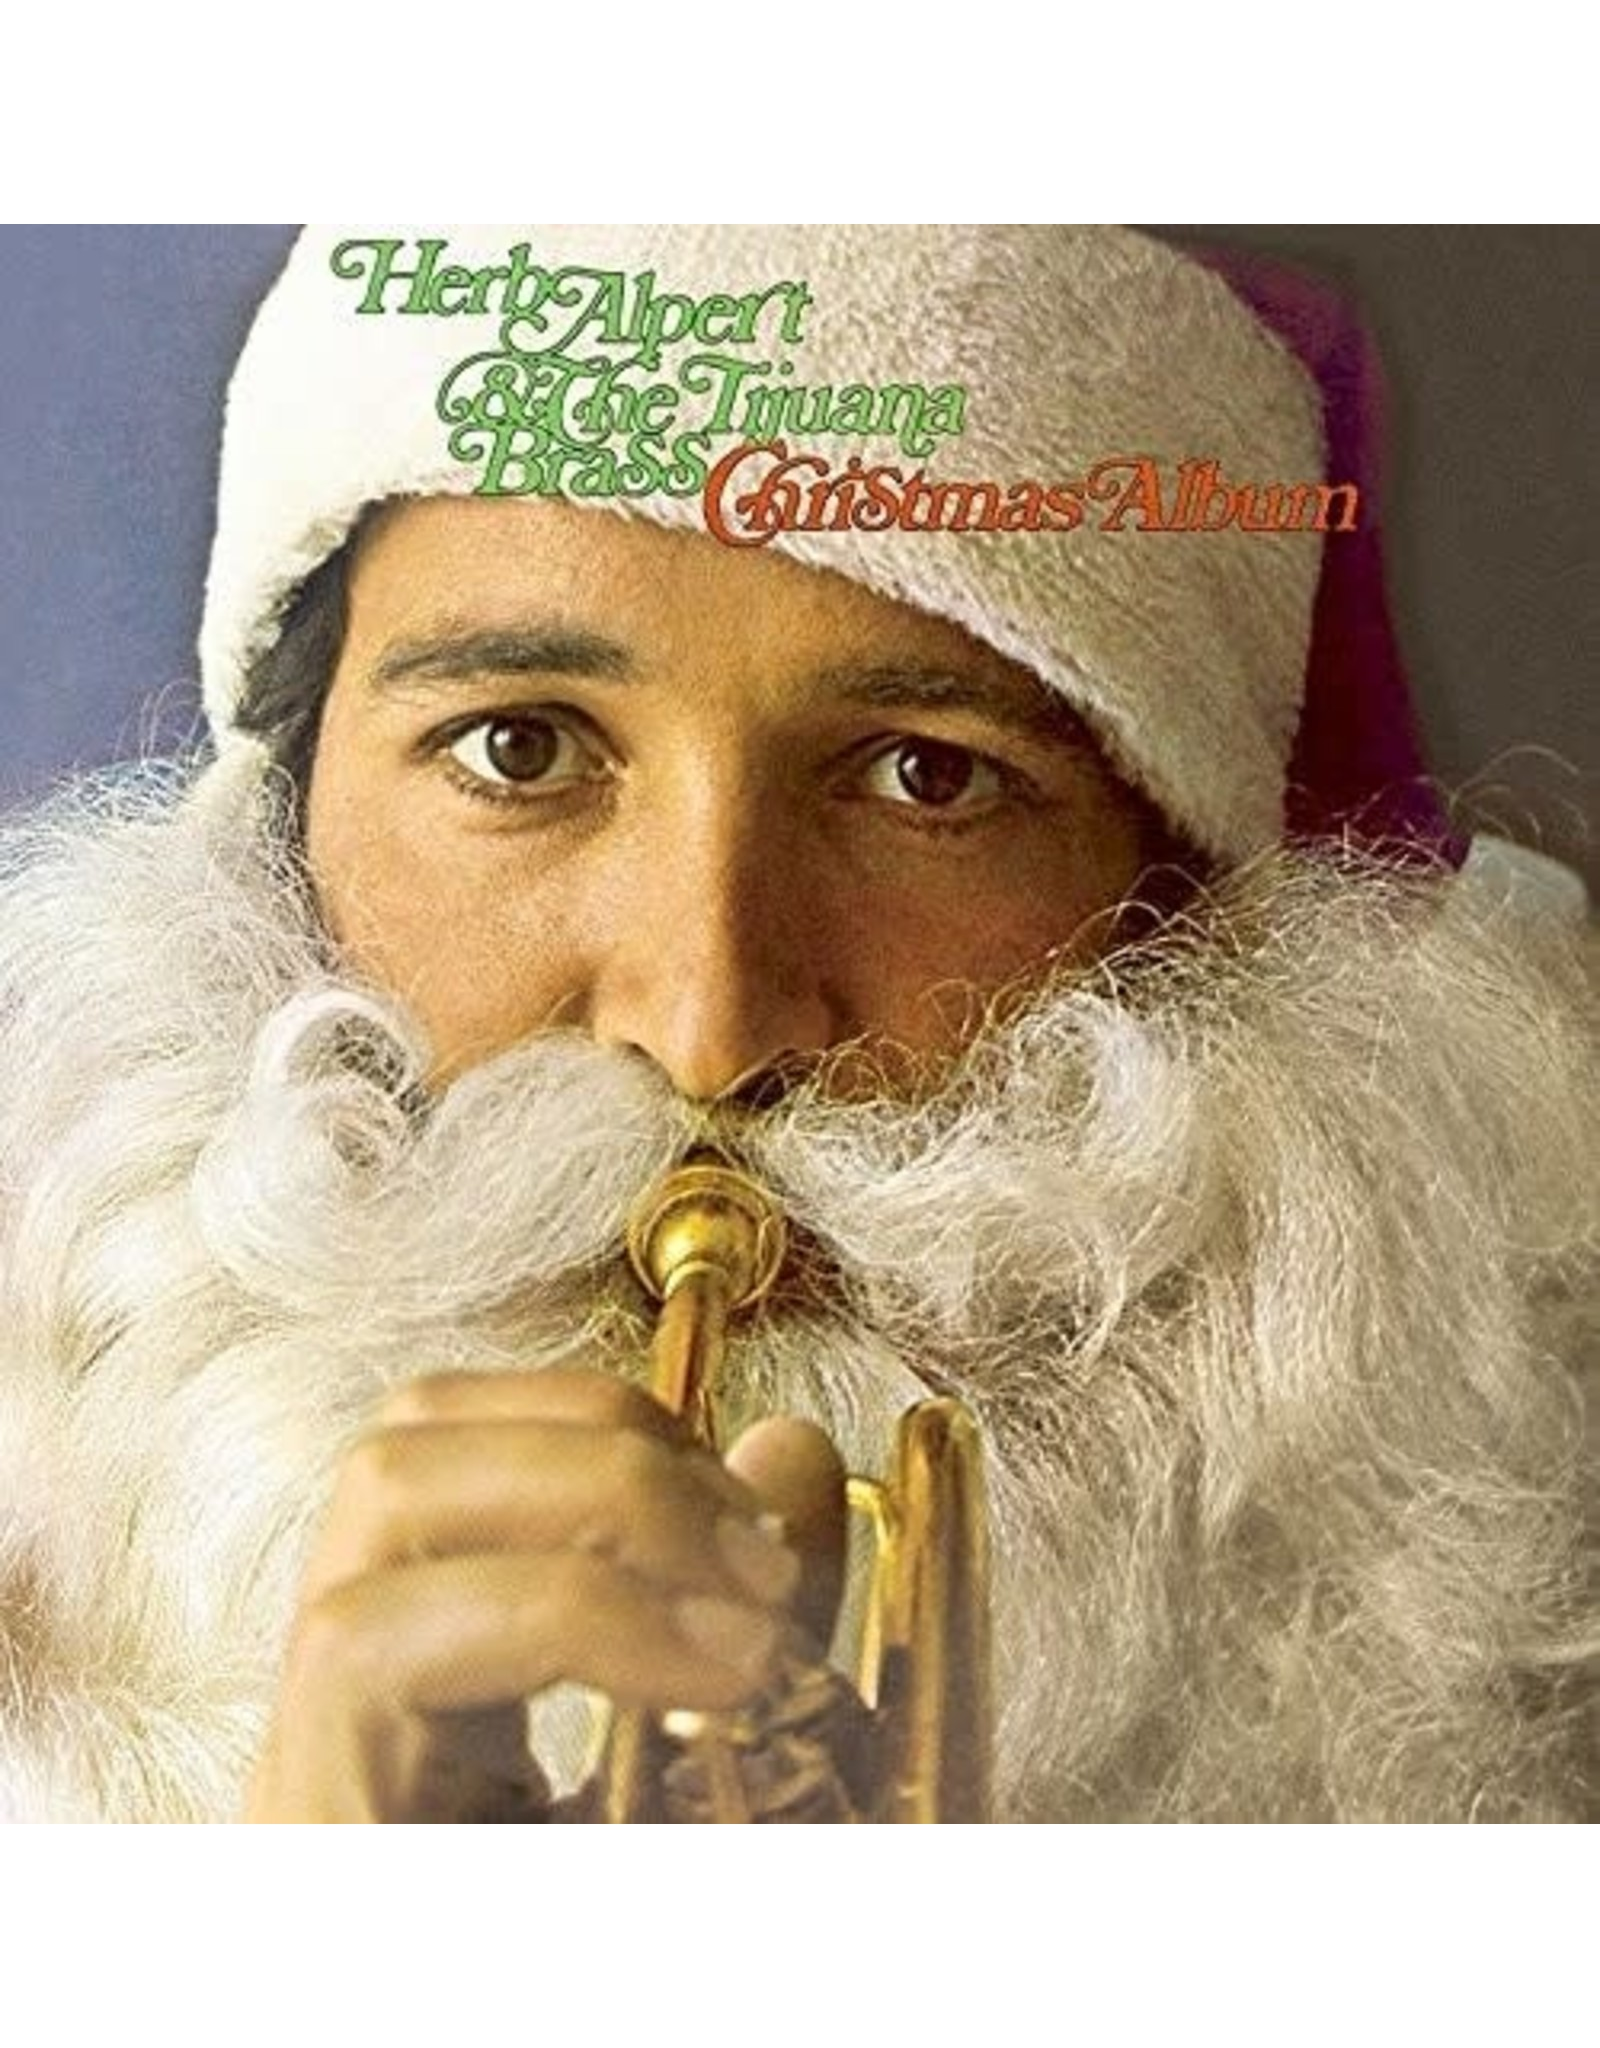 New Vinyl Herb Alpert & Tijuana Brass - Christmas Album LP